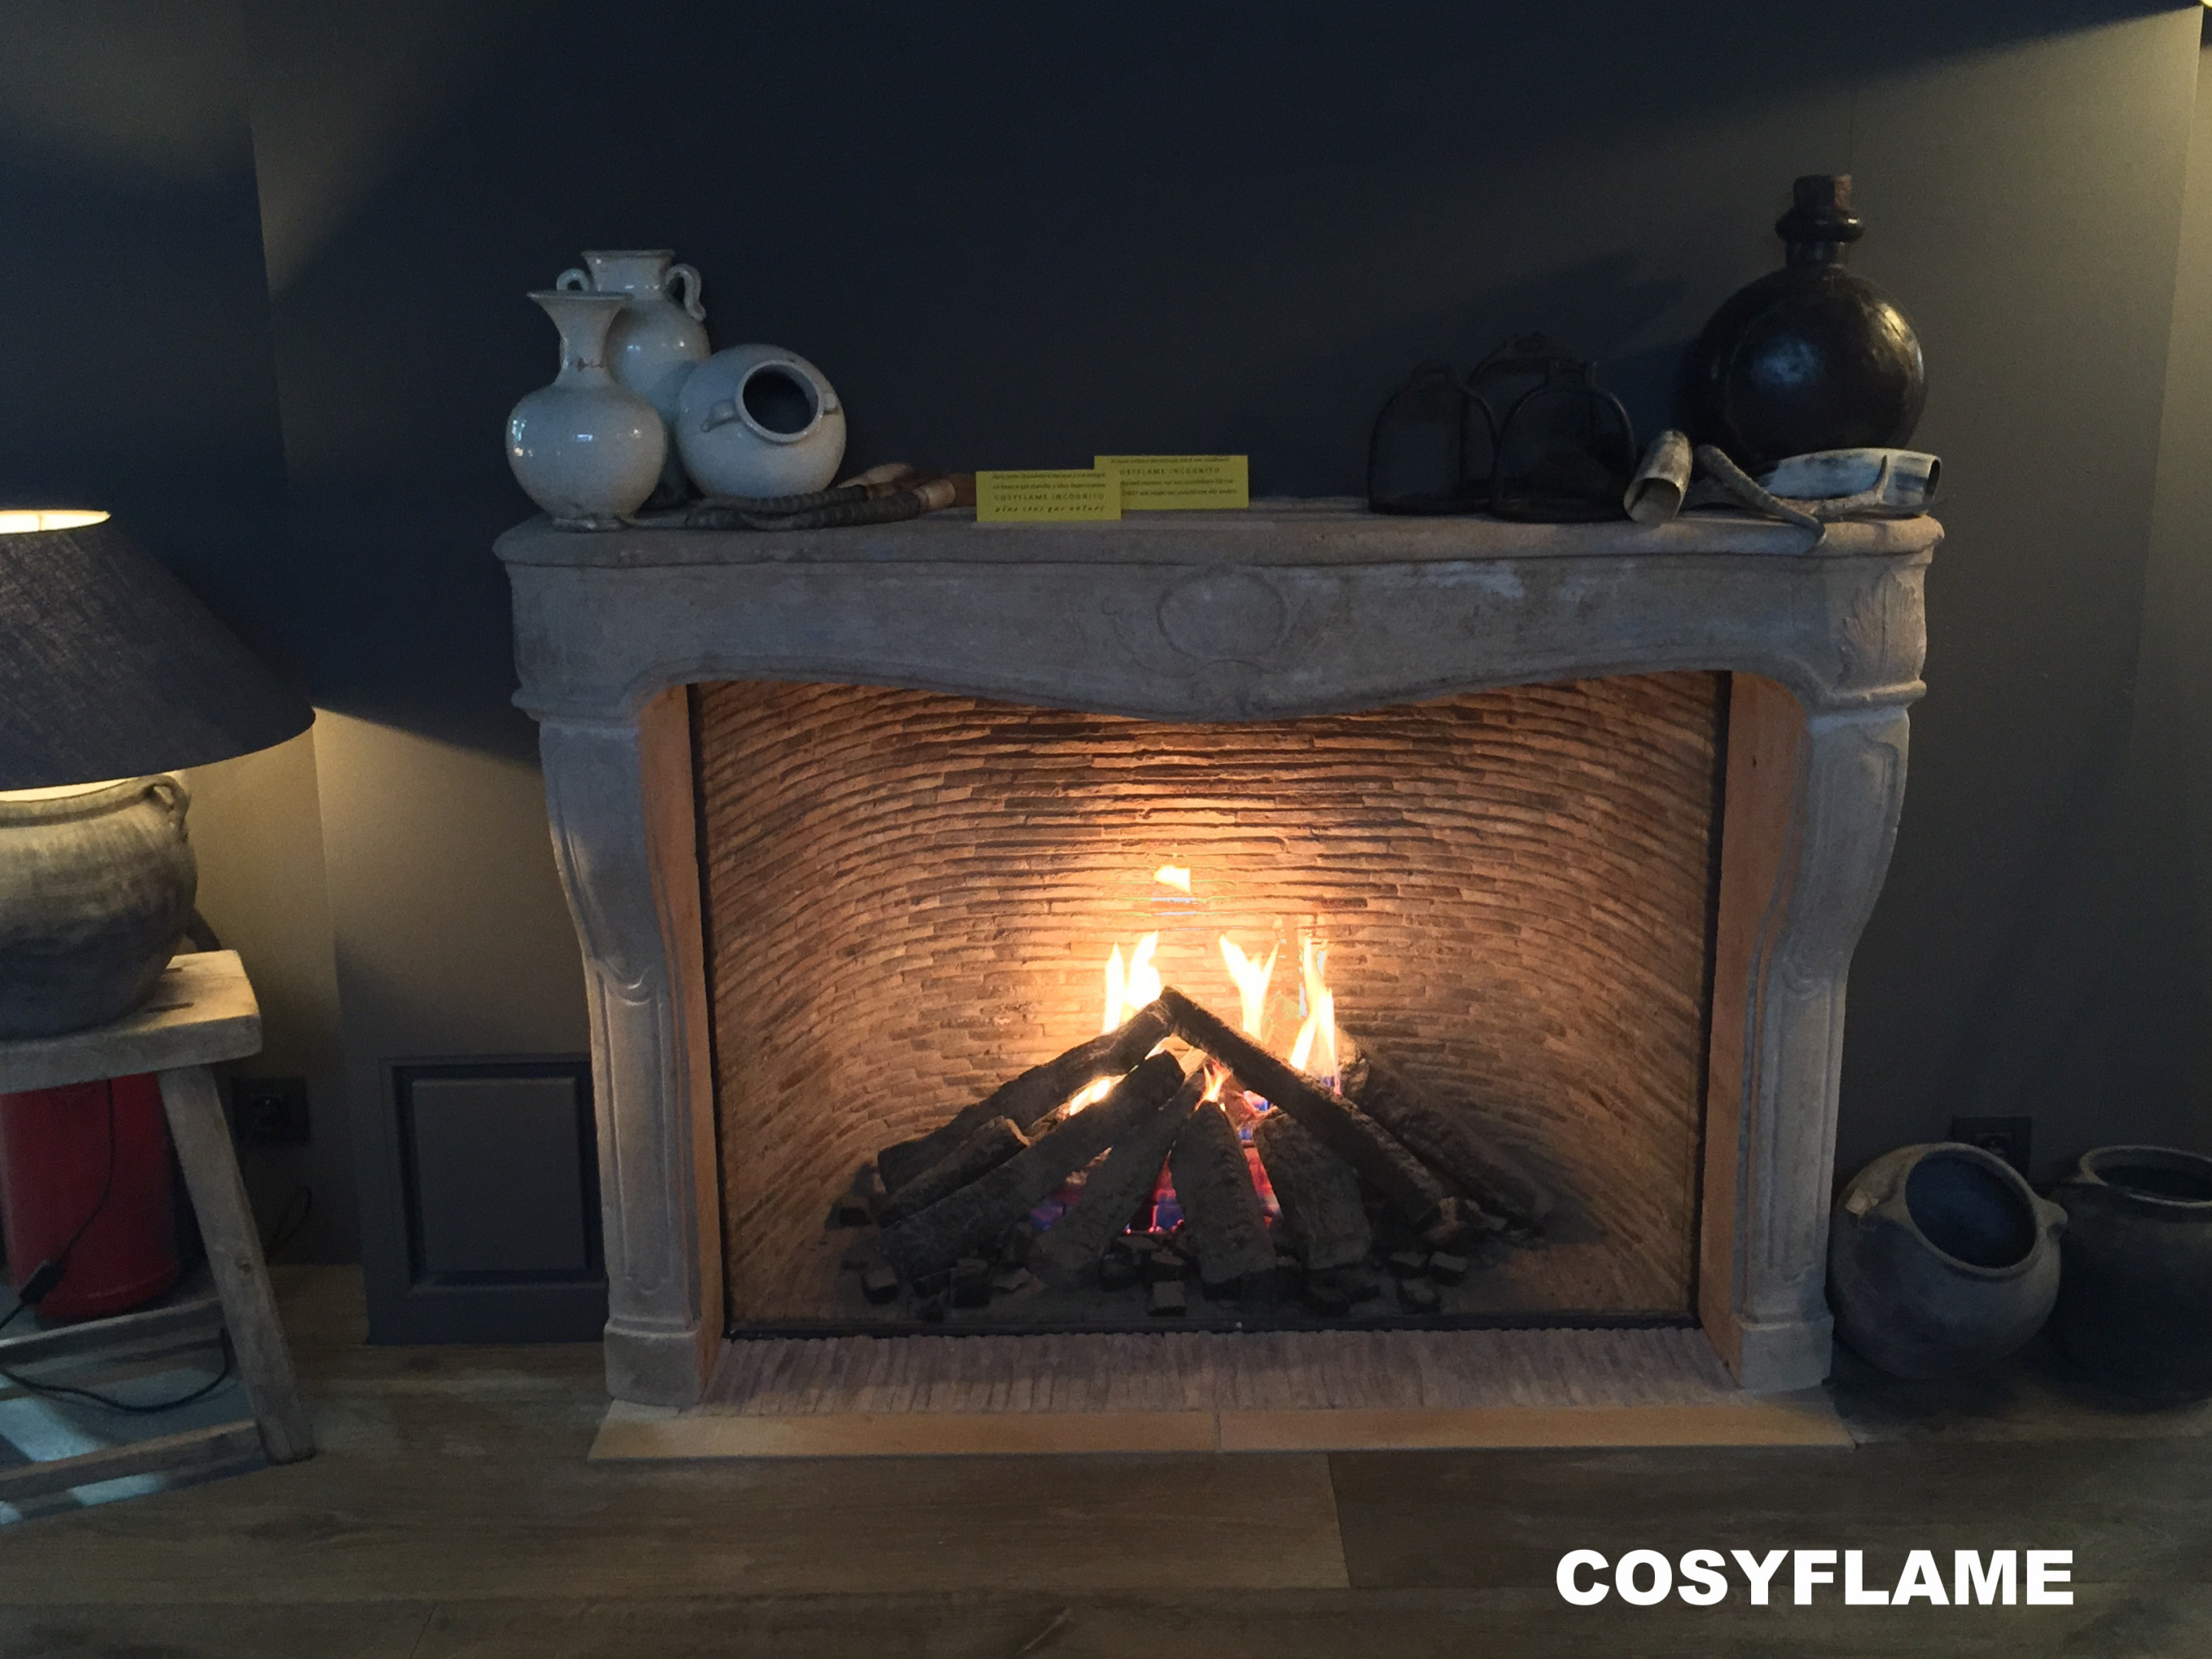 Cosyflame-Gele-pannenstrips-file1-8.jpeg